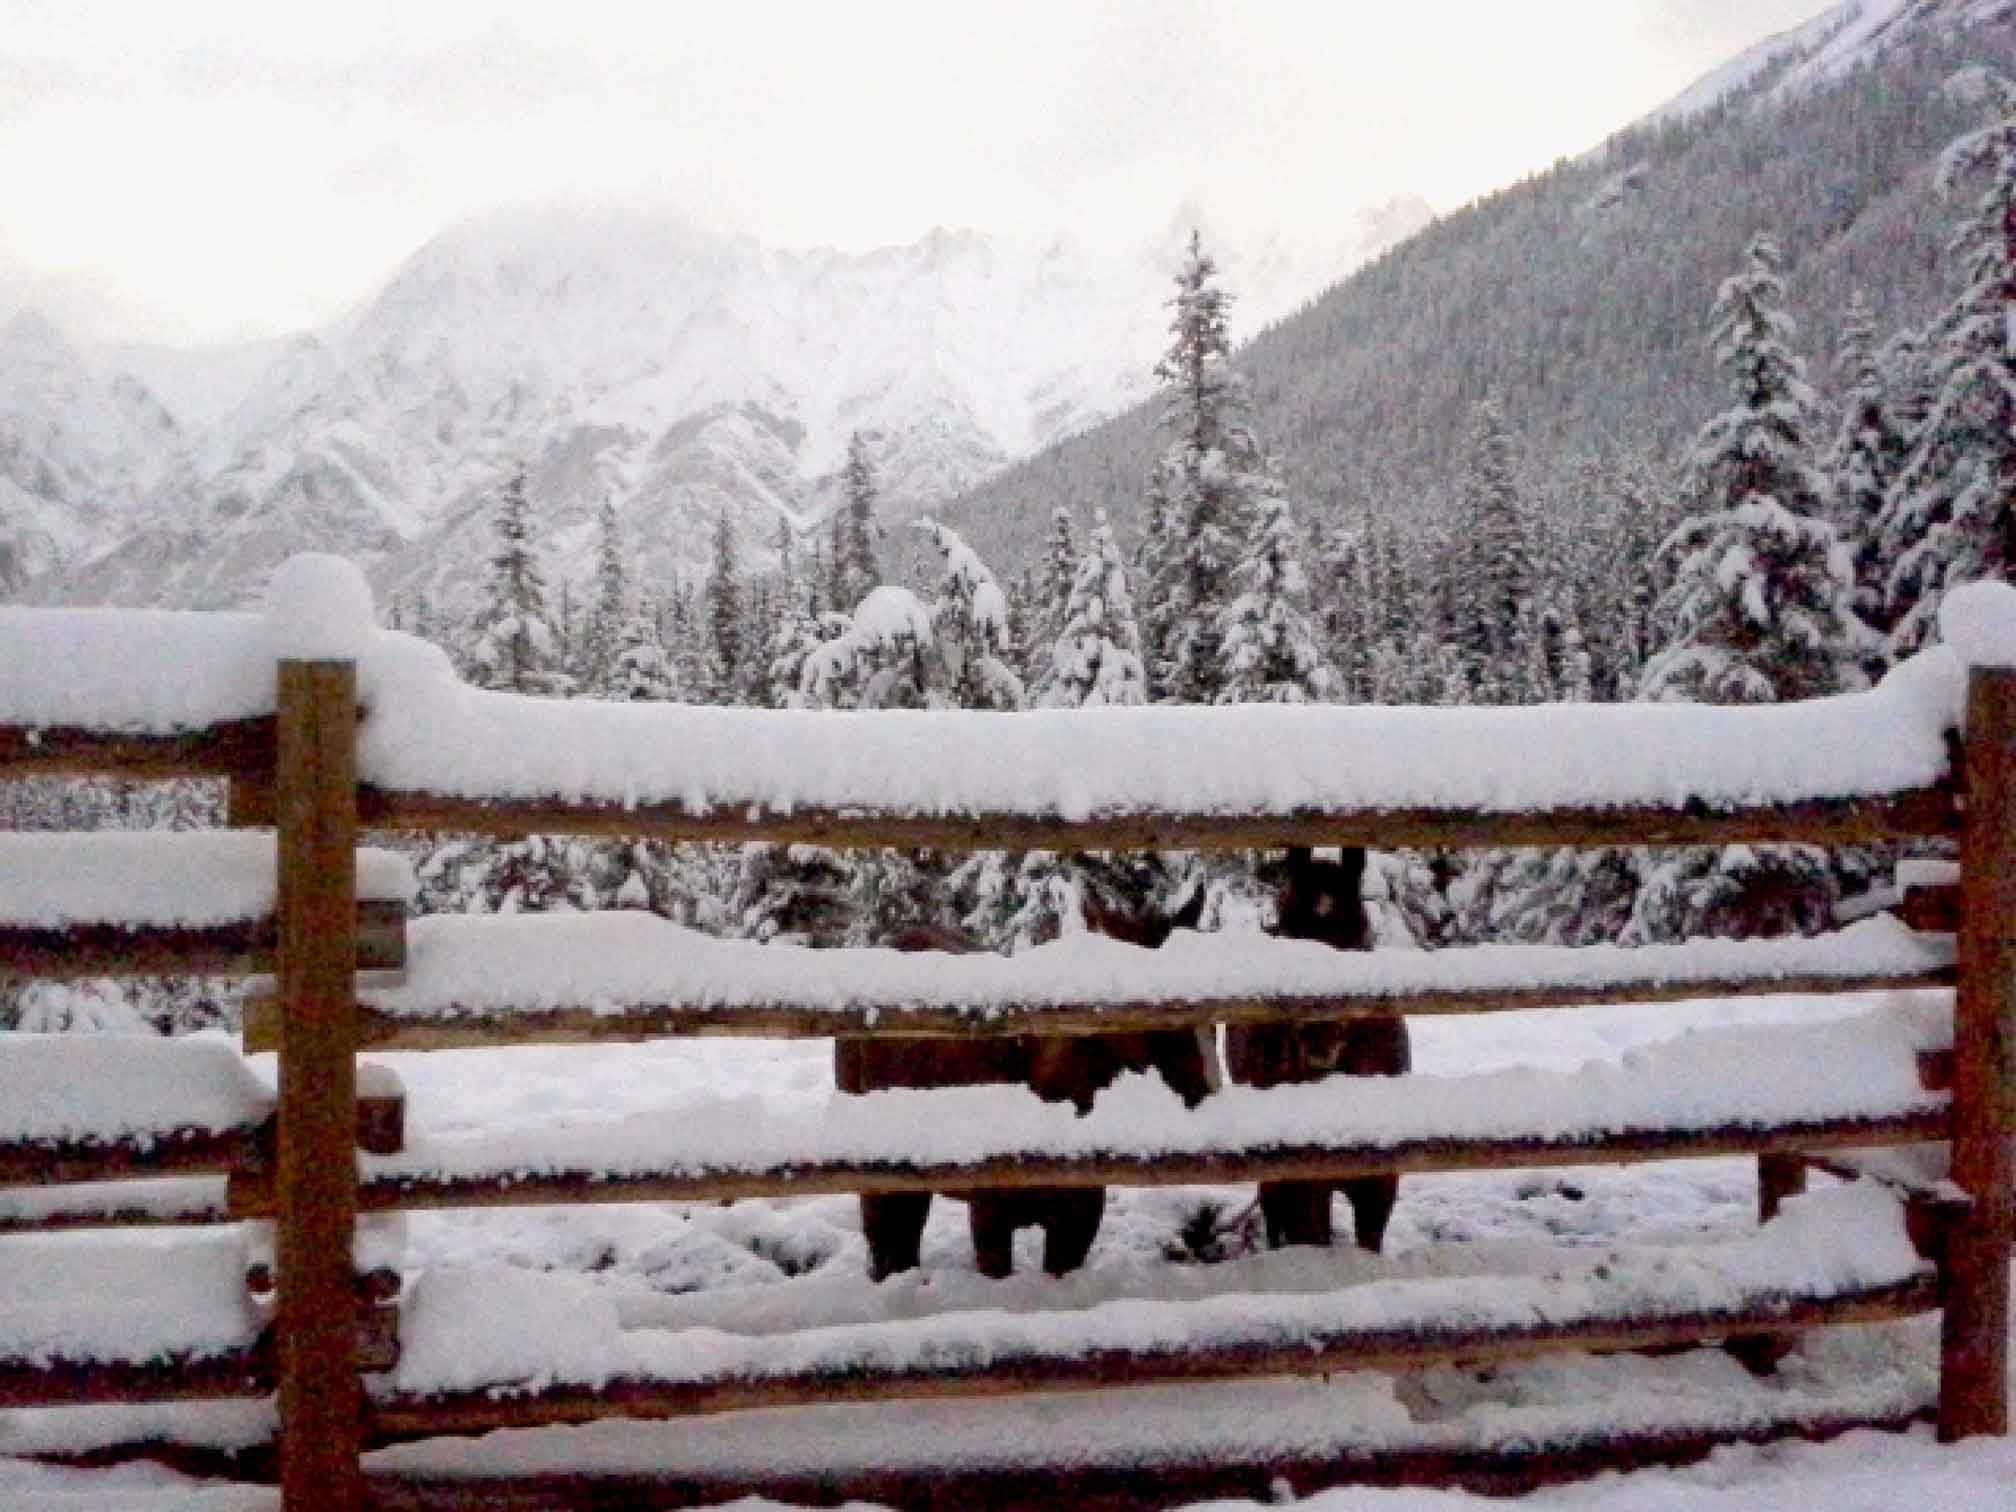 Deep snow on a wood post fence in front of two horses and mountain scenery in the backcountry of Banff National Park. When preparing your camping checklist, make sure you're ready for the unexpected!